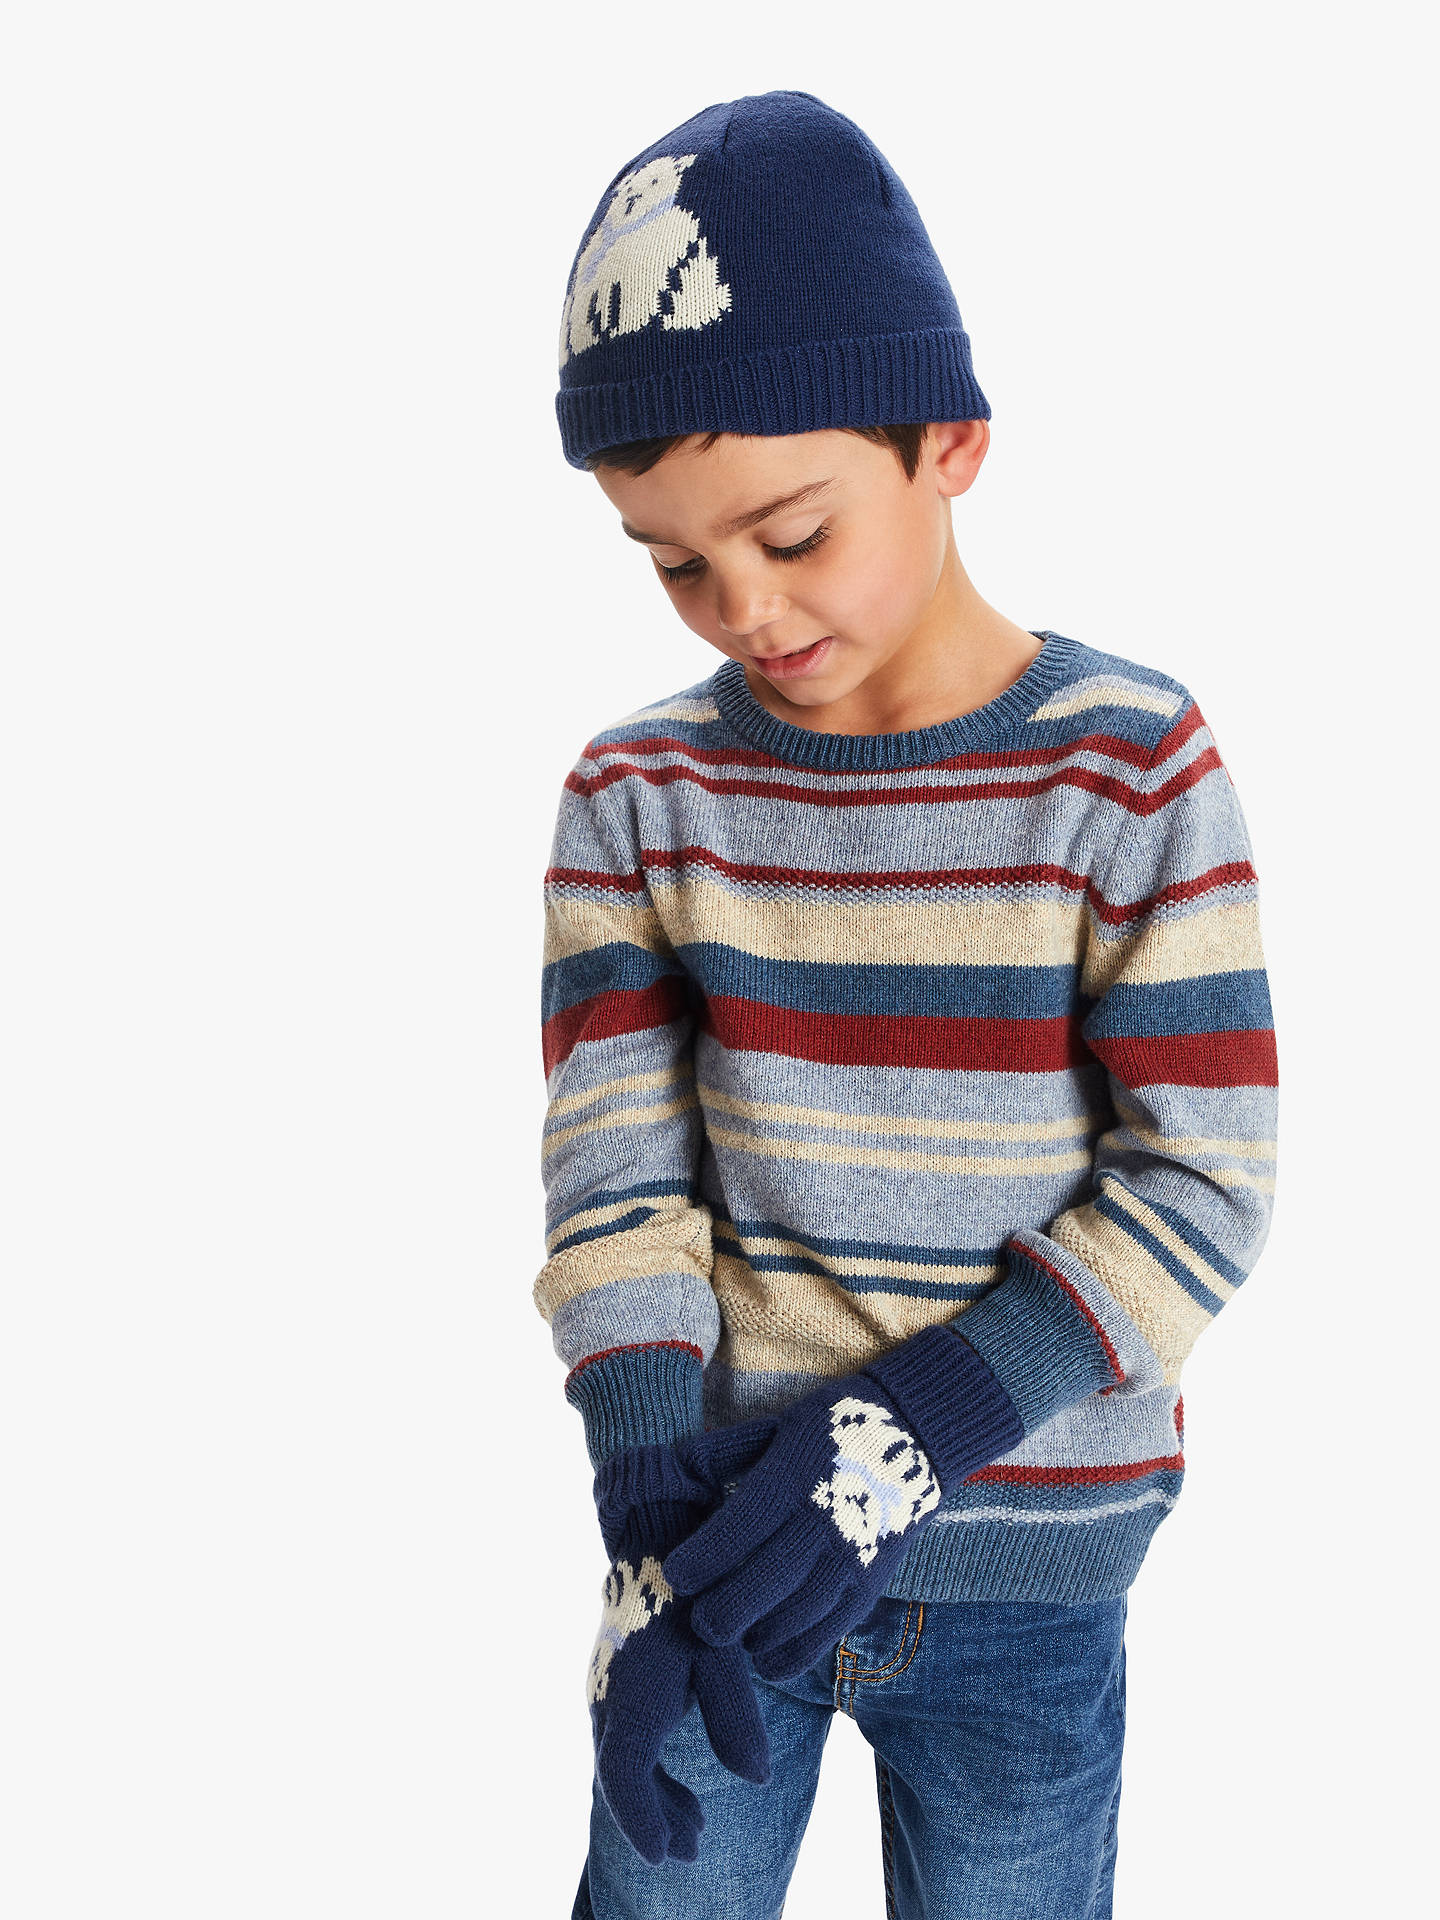 Lego Boys Knit Hat and Gloves Set